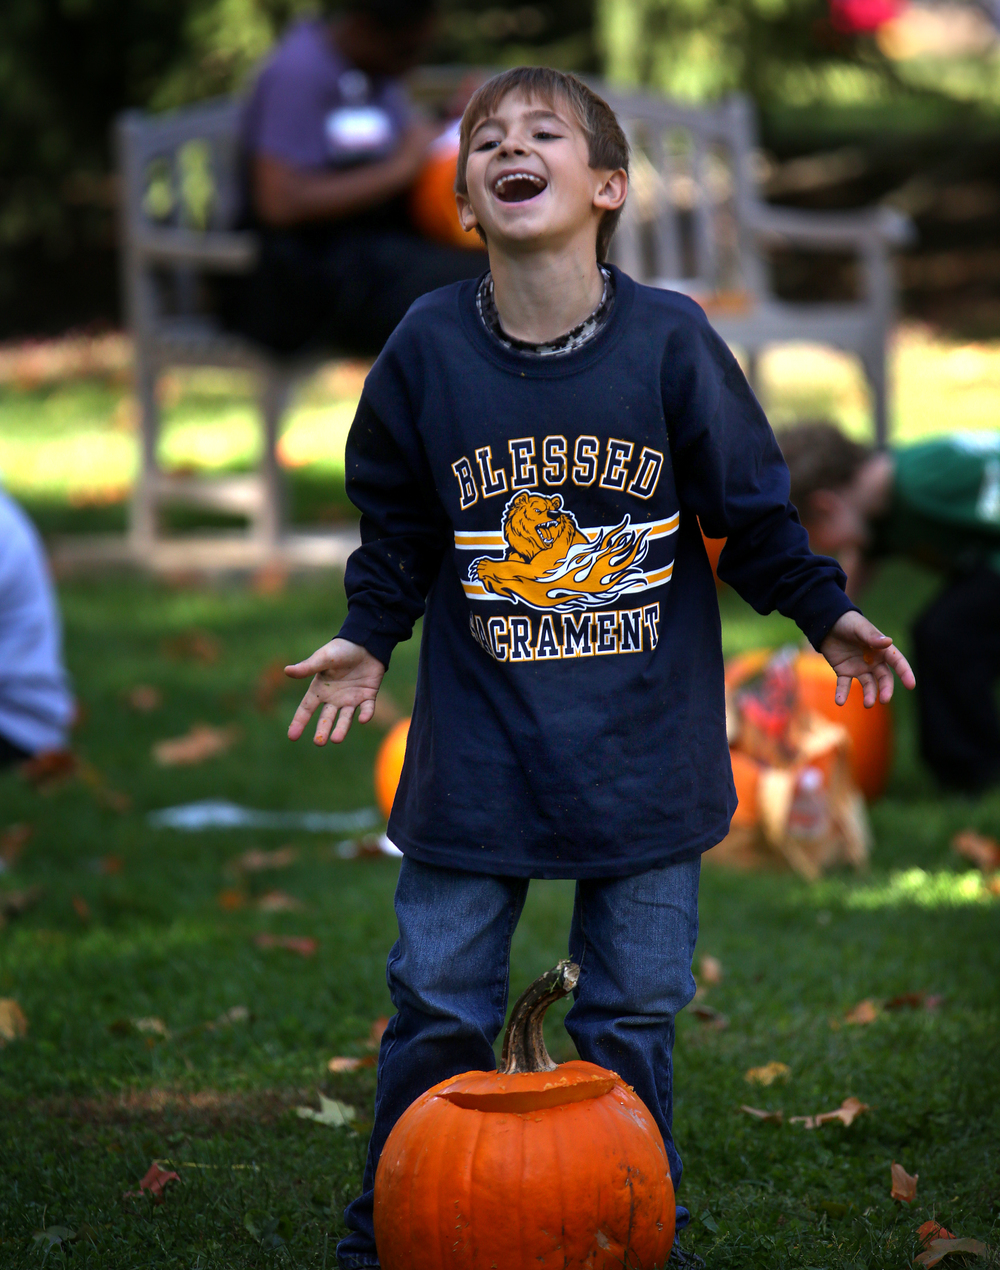 "The residue of slimy pumpkin ""guts"" made it a laughing matter for Tyler Verry, 6, of Springfield, who had this pumpkin slip out of his hands while transporting it to where he was going to carve it Saturday morning. David Spencer/The State Journal-Register"